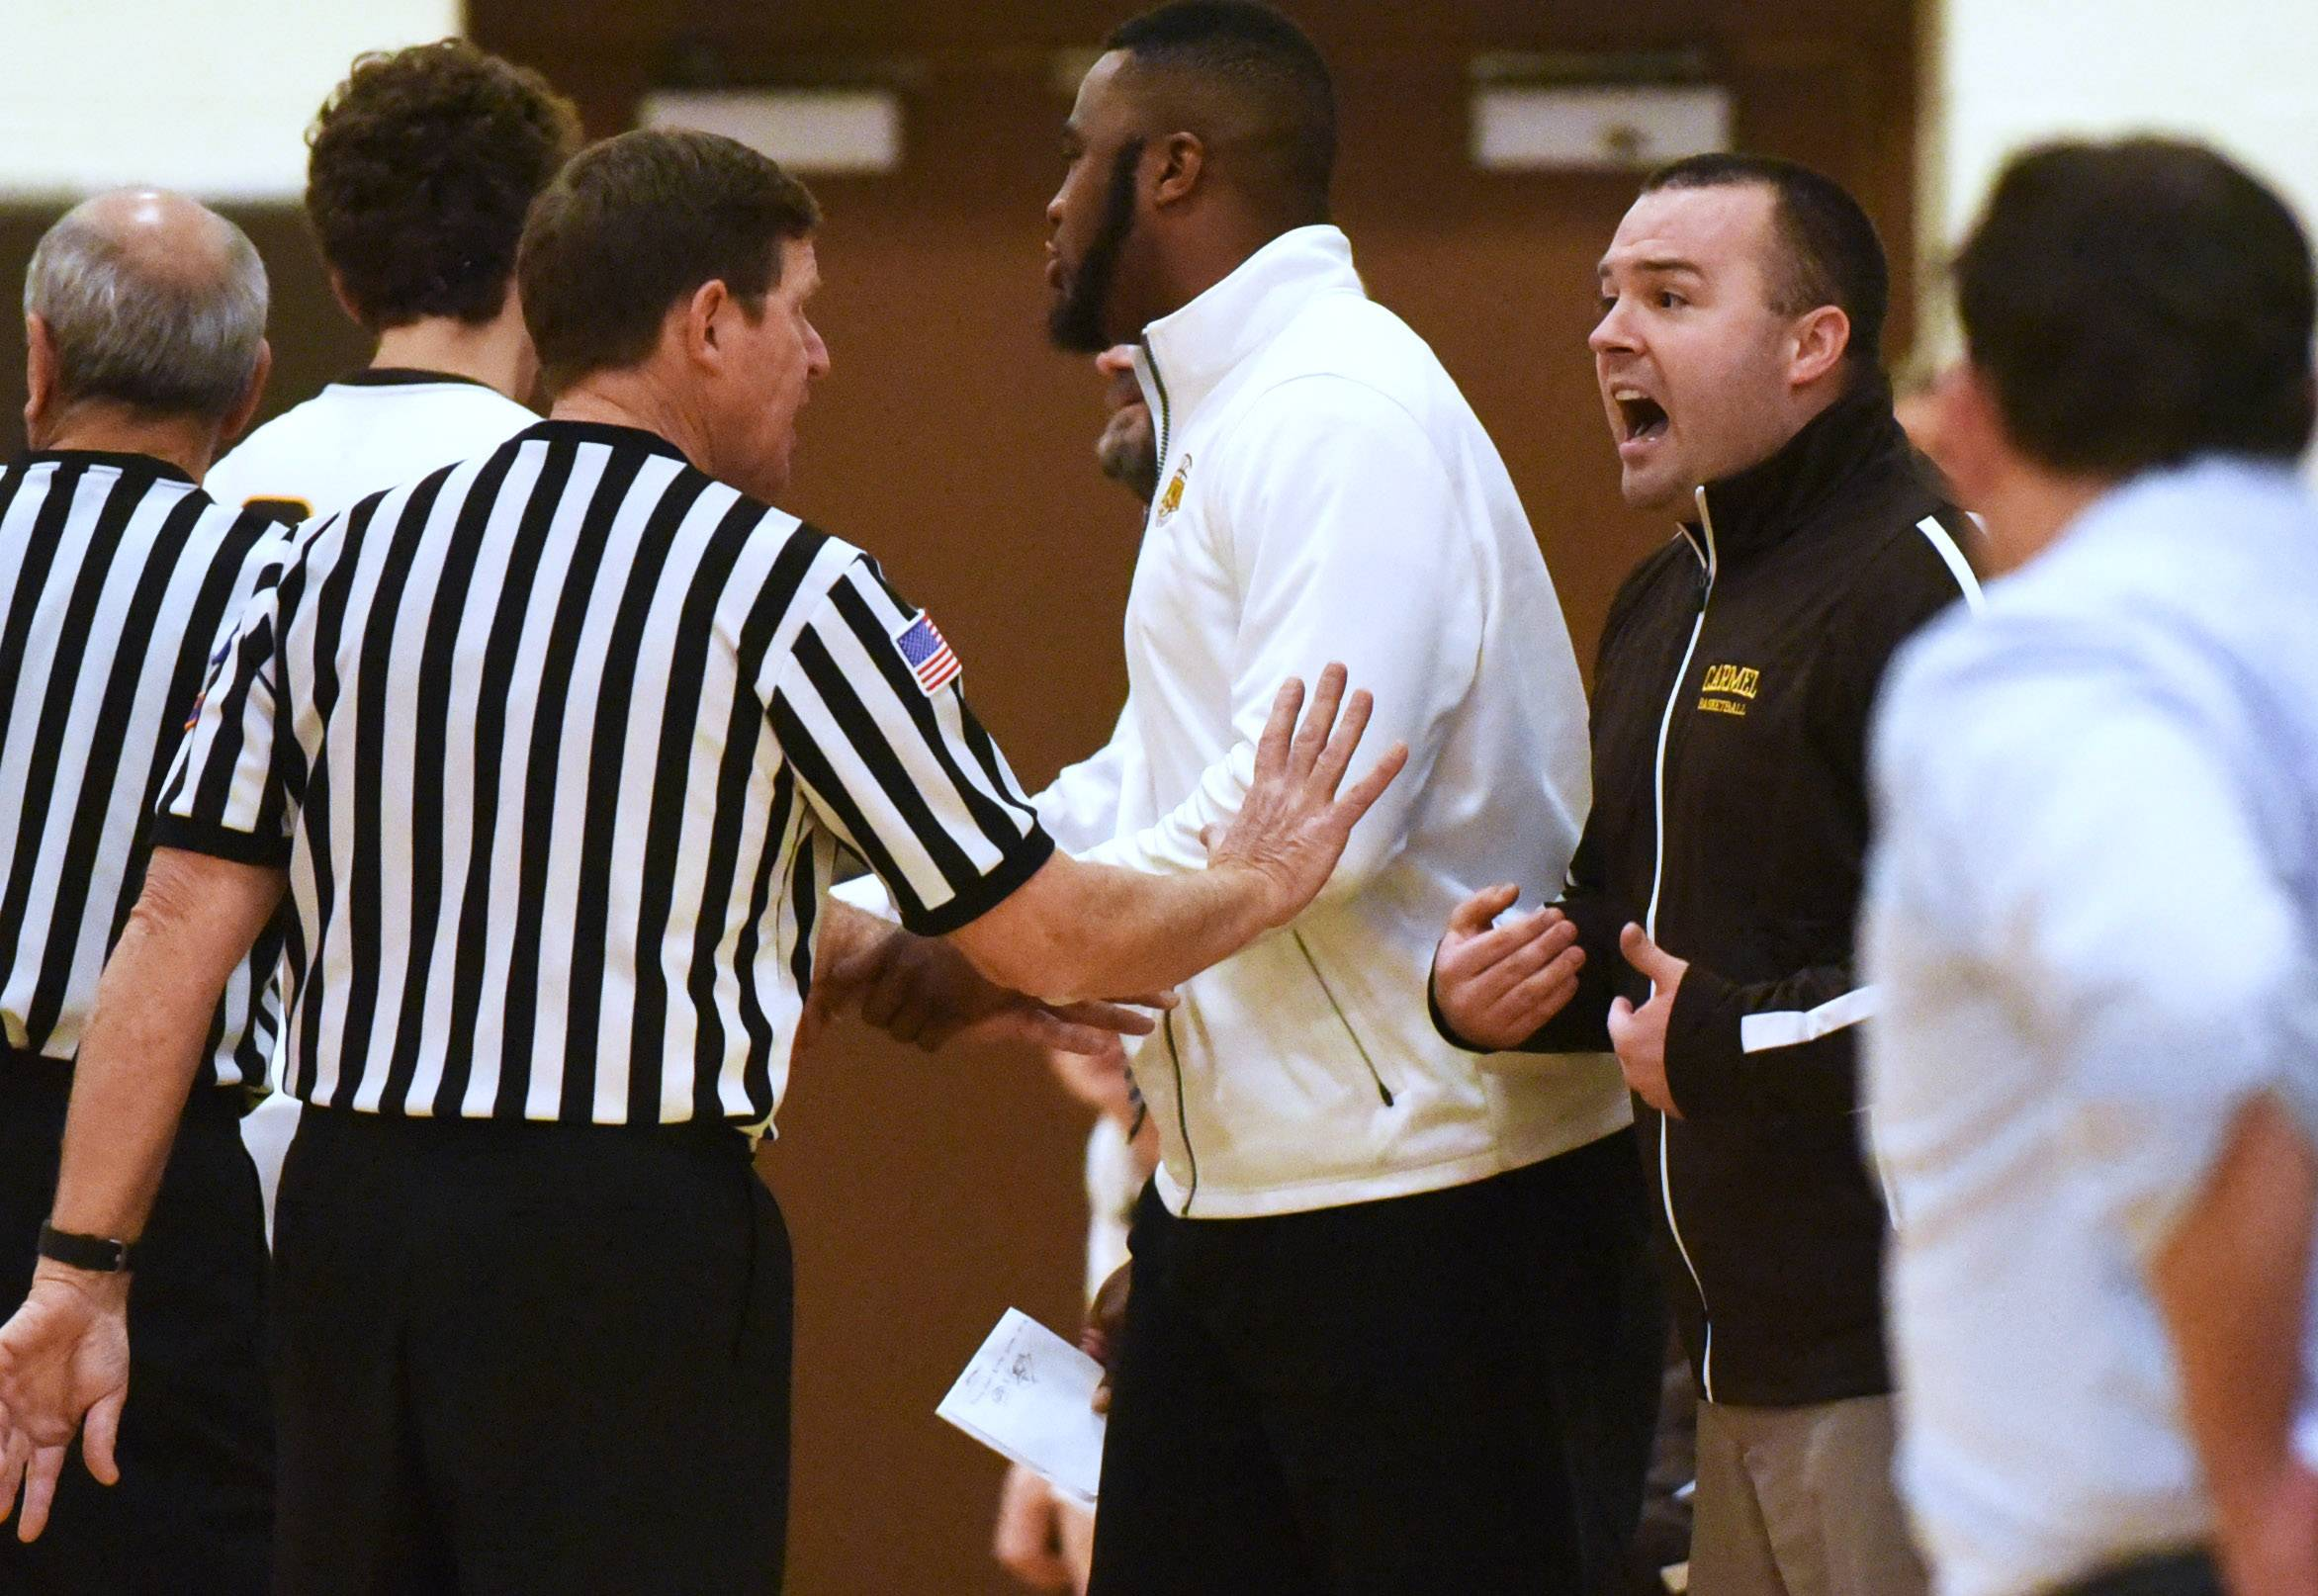 Carmel's boys head varsity basketball coach Zack Ryan, right, exchanges words with the refs during Friday's game against Notre Dame in Mundelein.